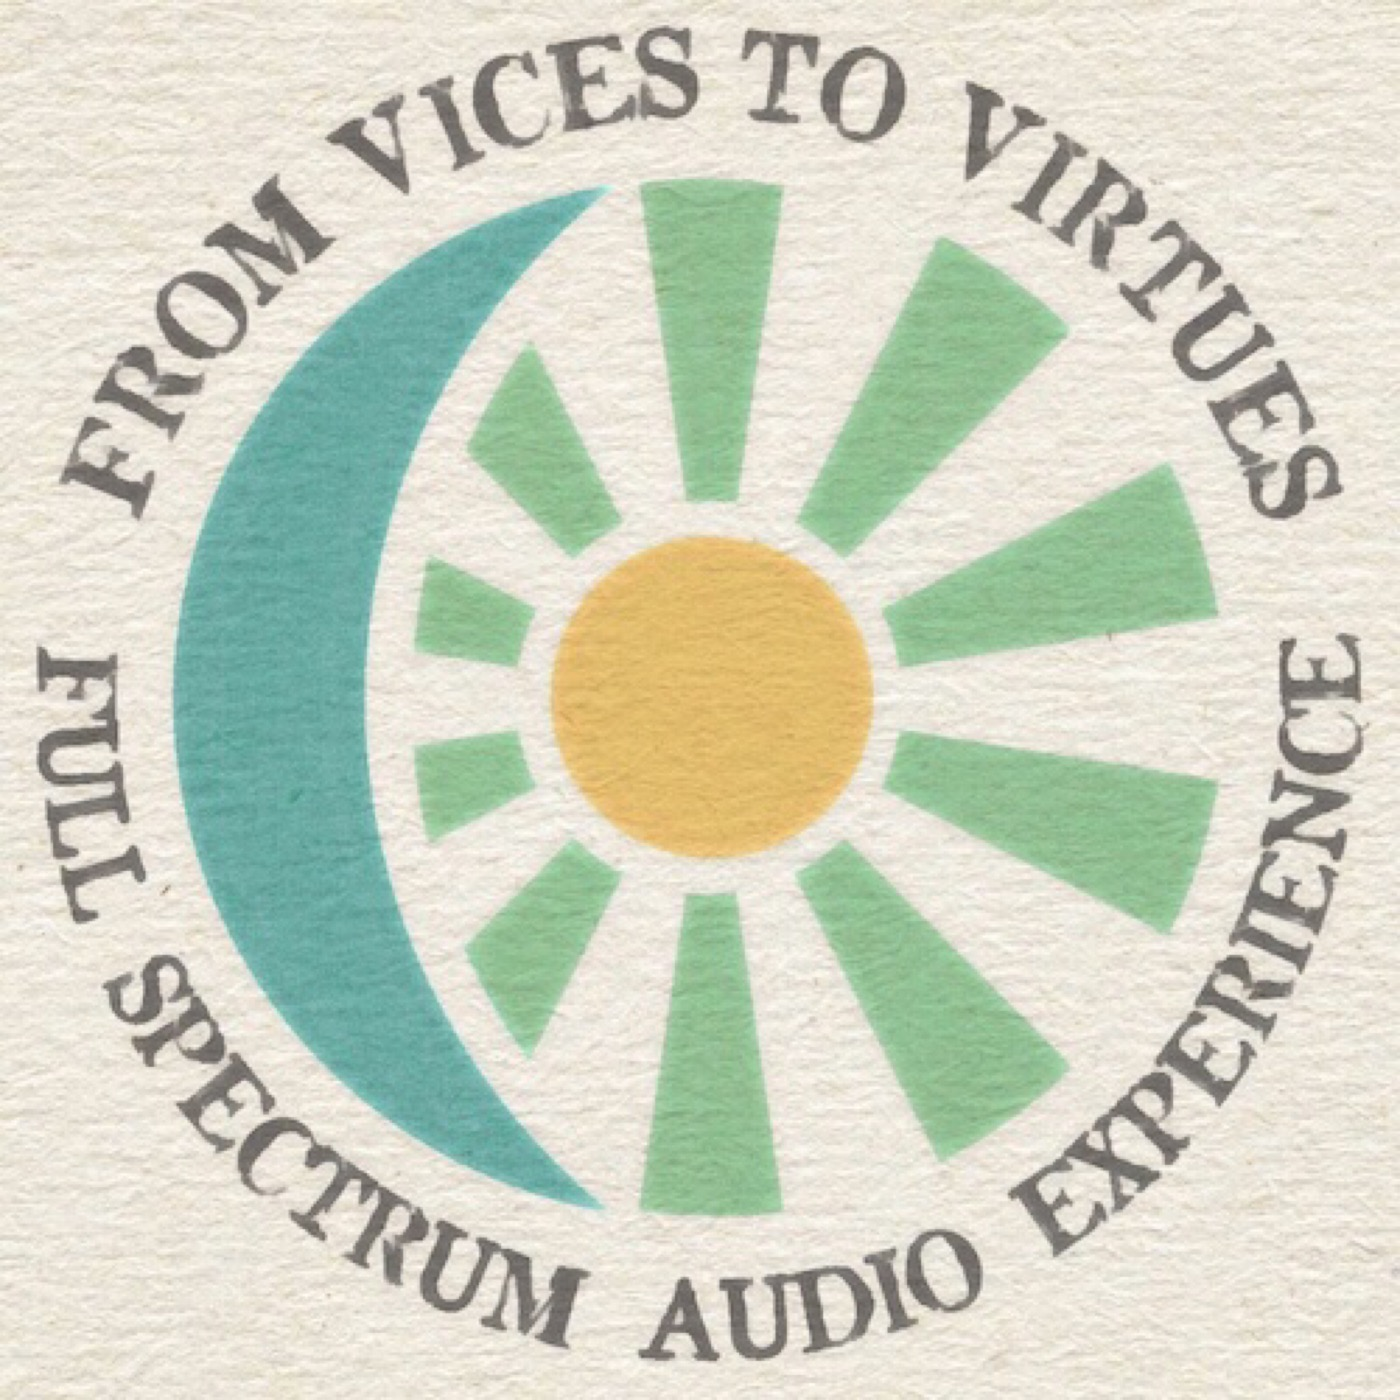 From Vices To Virtues Essential High Performance Podcast Experience show art